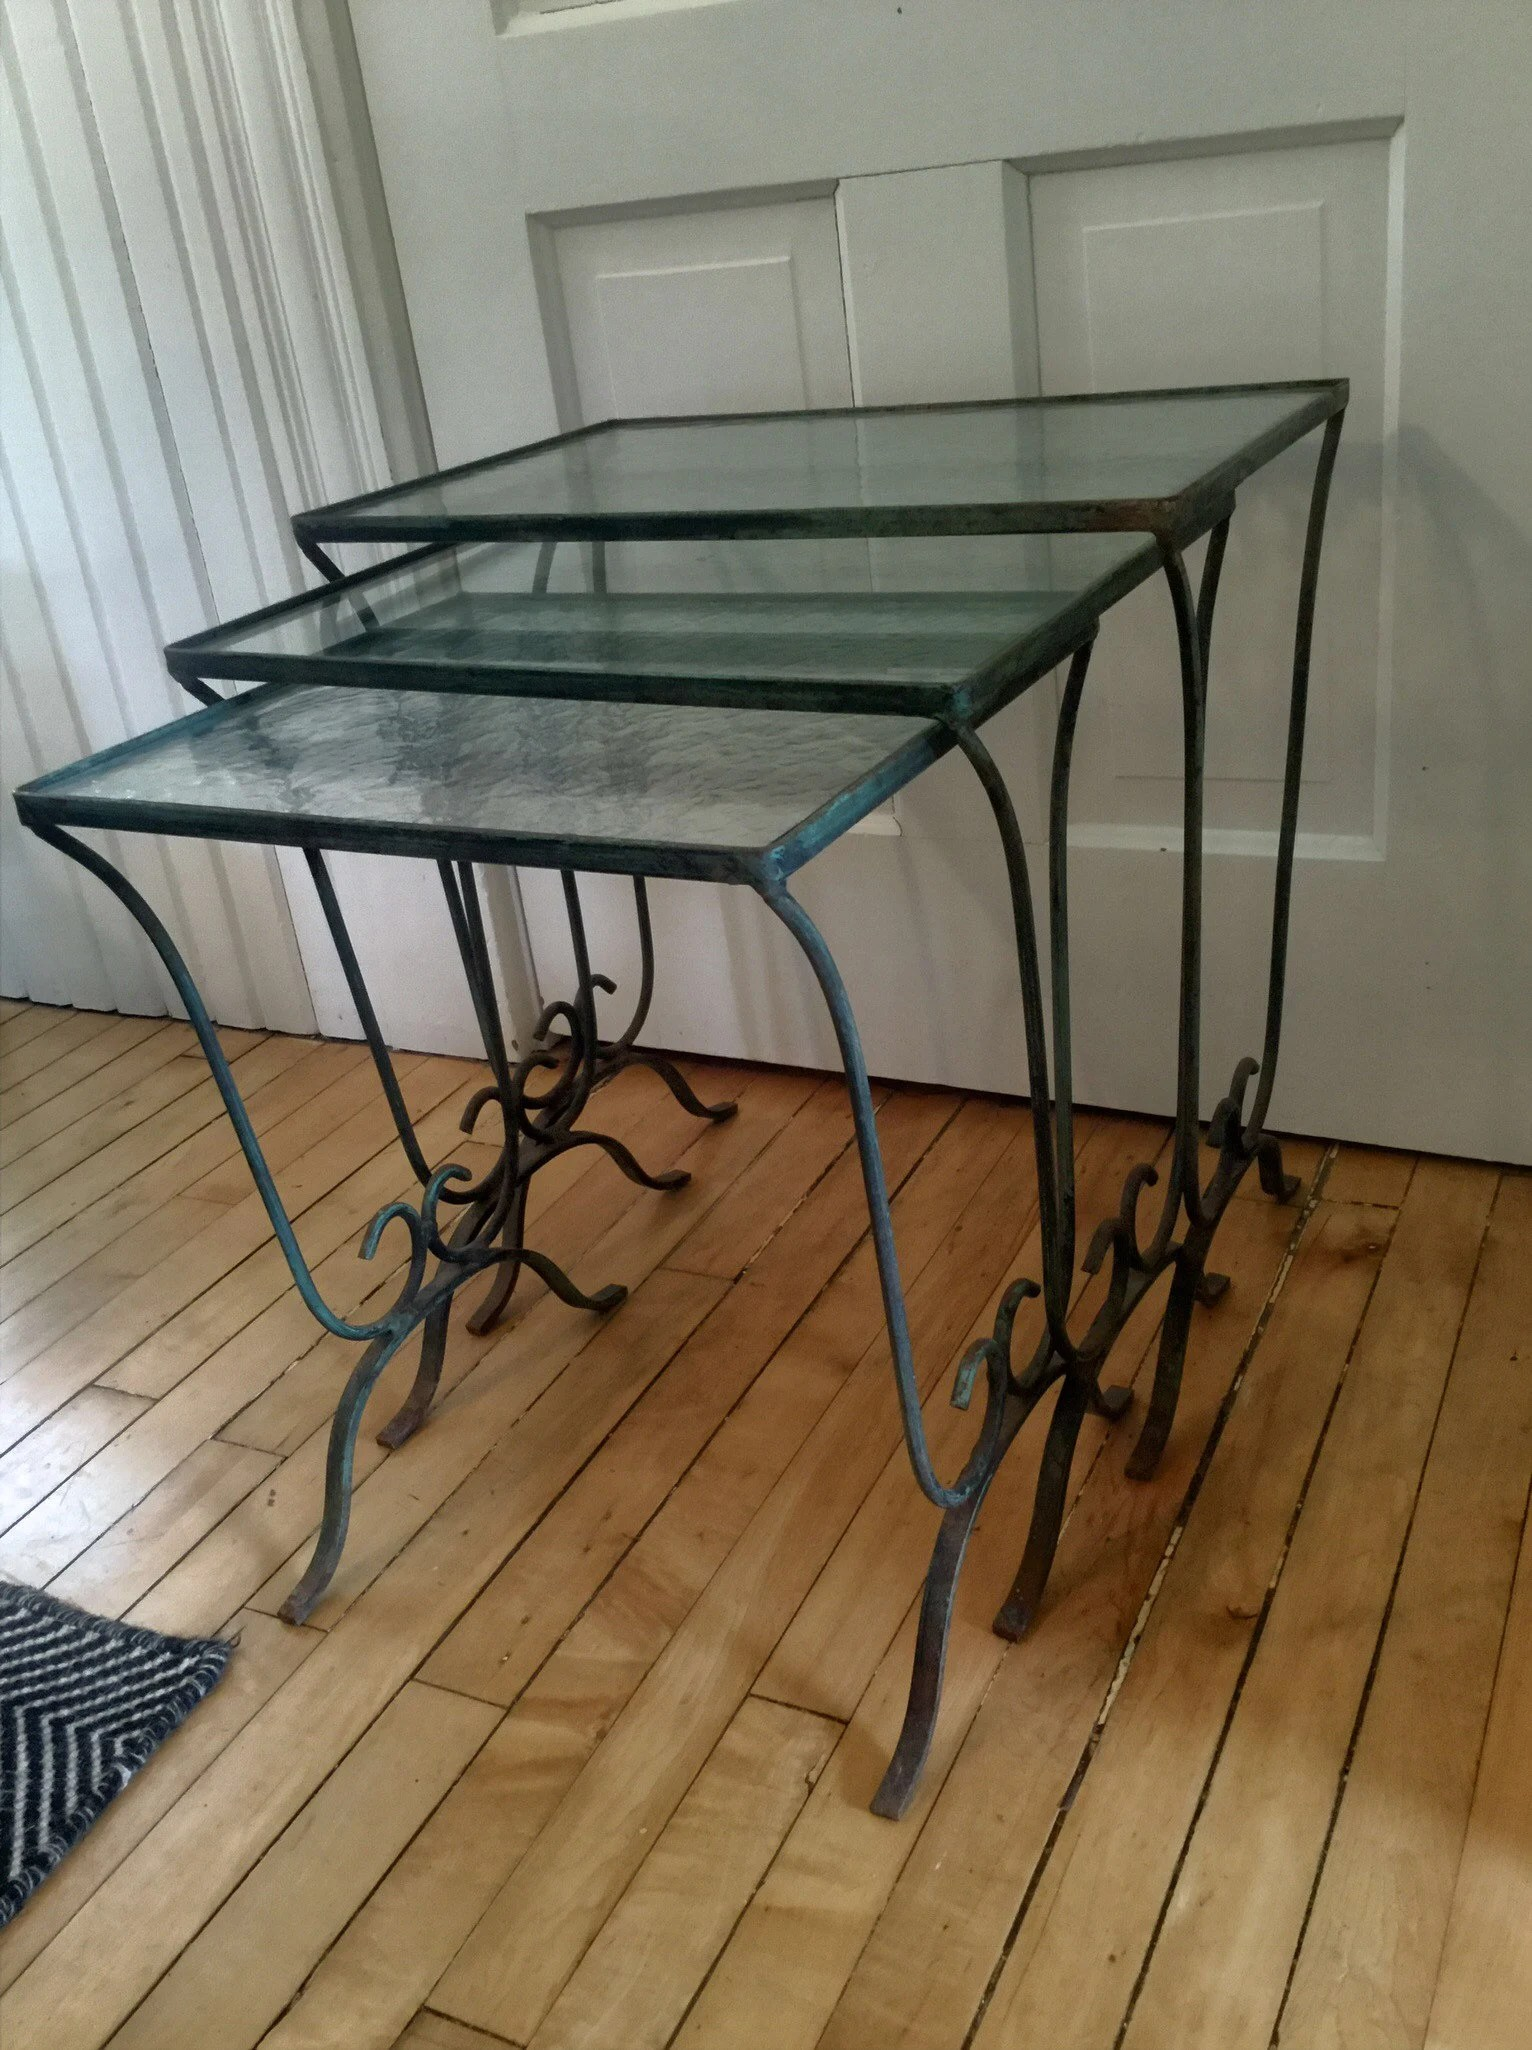 Glass Nesting Tables Outdoor Nesting Tables Iron And Glass Vintage Glass Top Set Of 3 Metal Patio Tables Porch Tables End Table Side Table Occasional